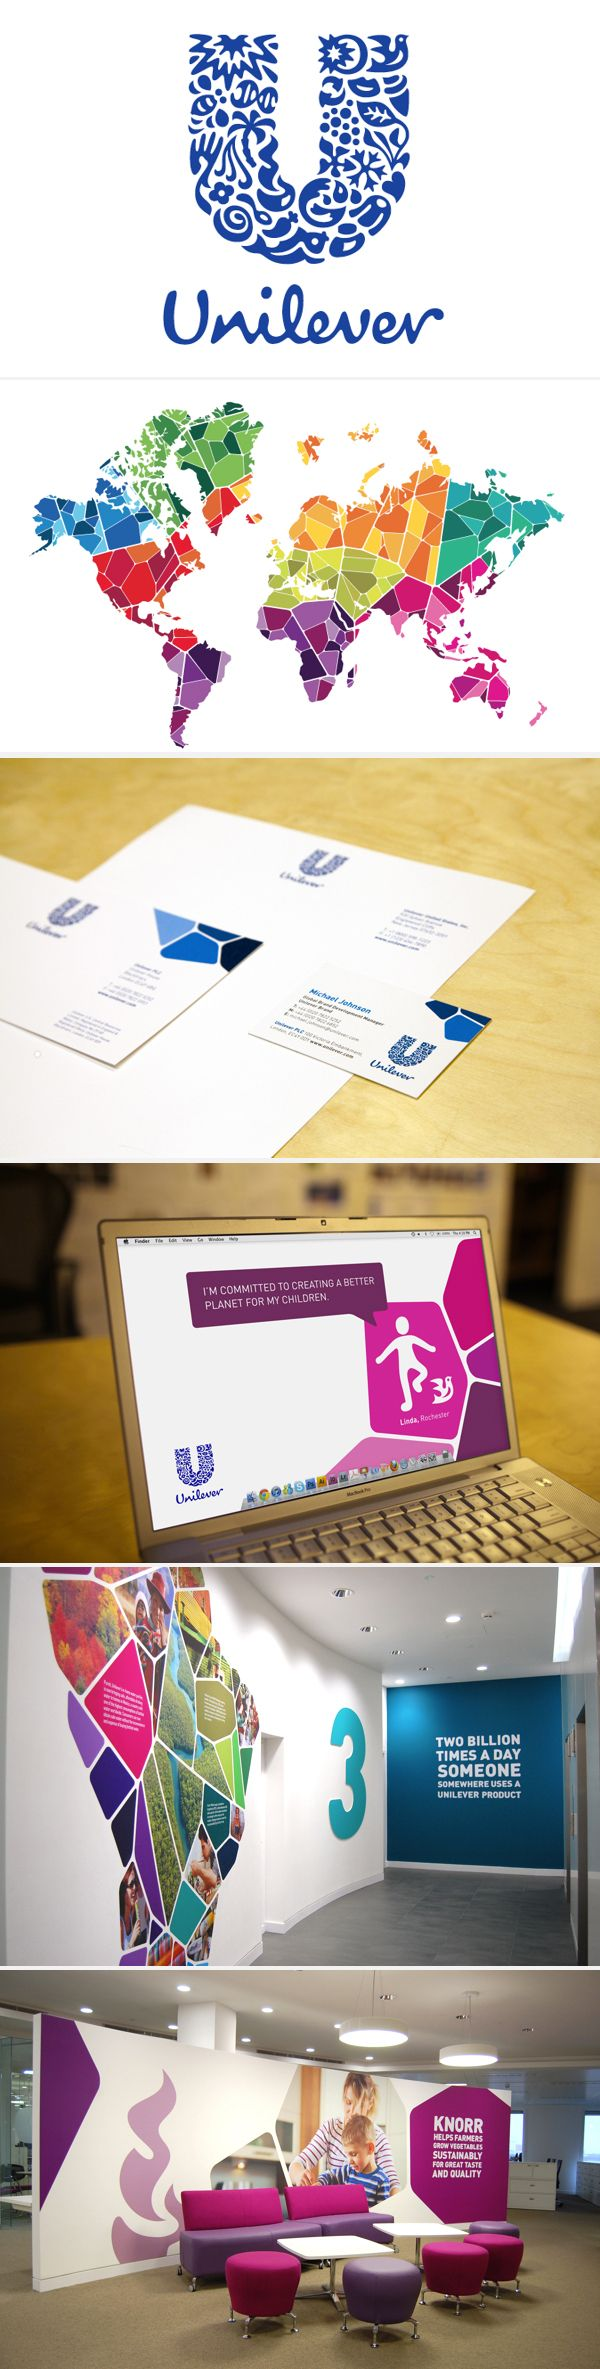 I love how this look and feel translates from paper into a physical space - great inspiration for a conference or event.